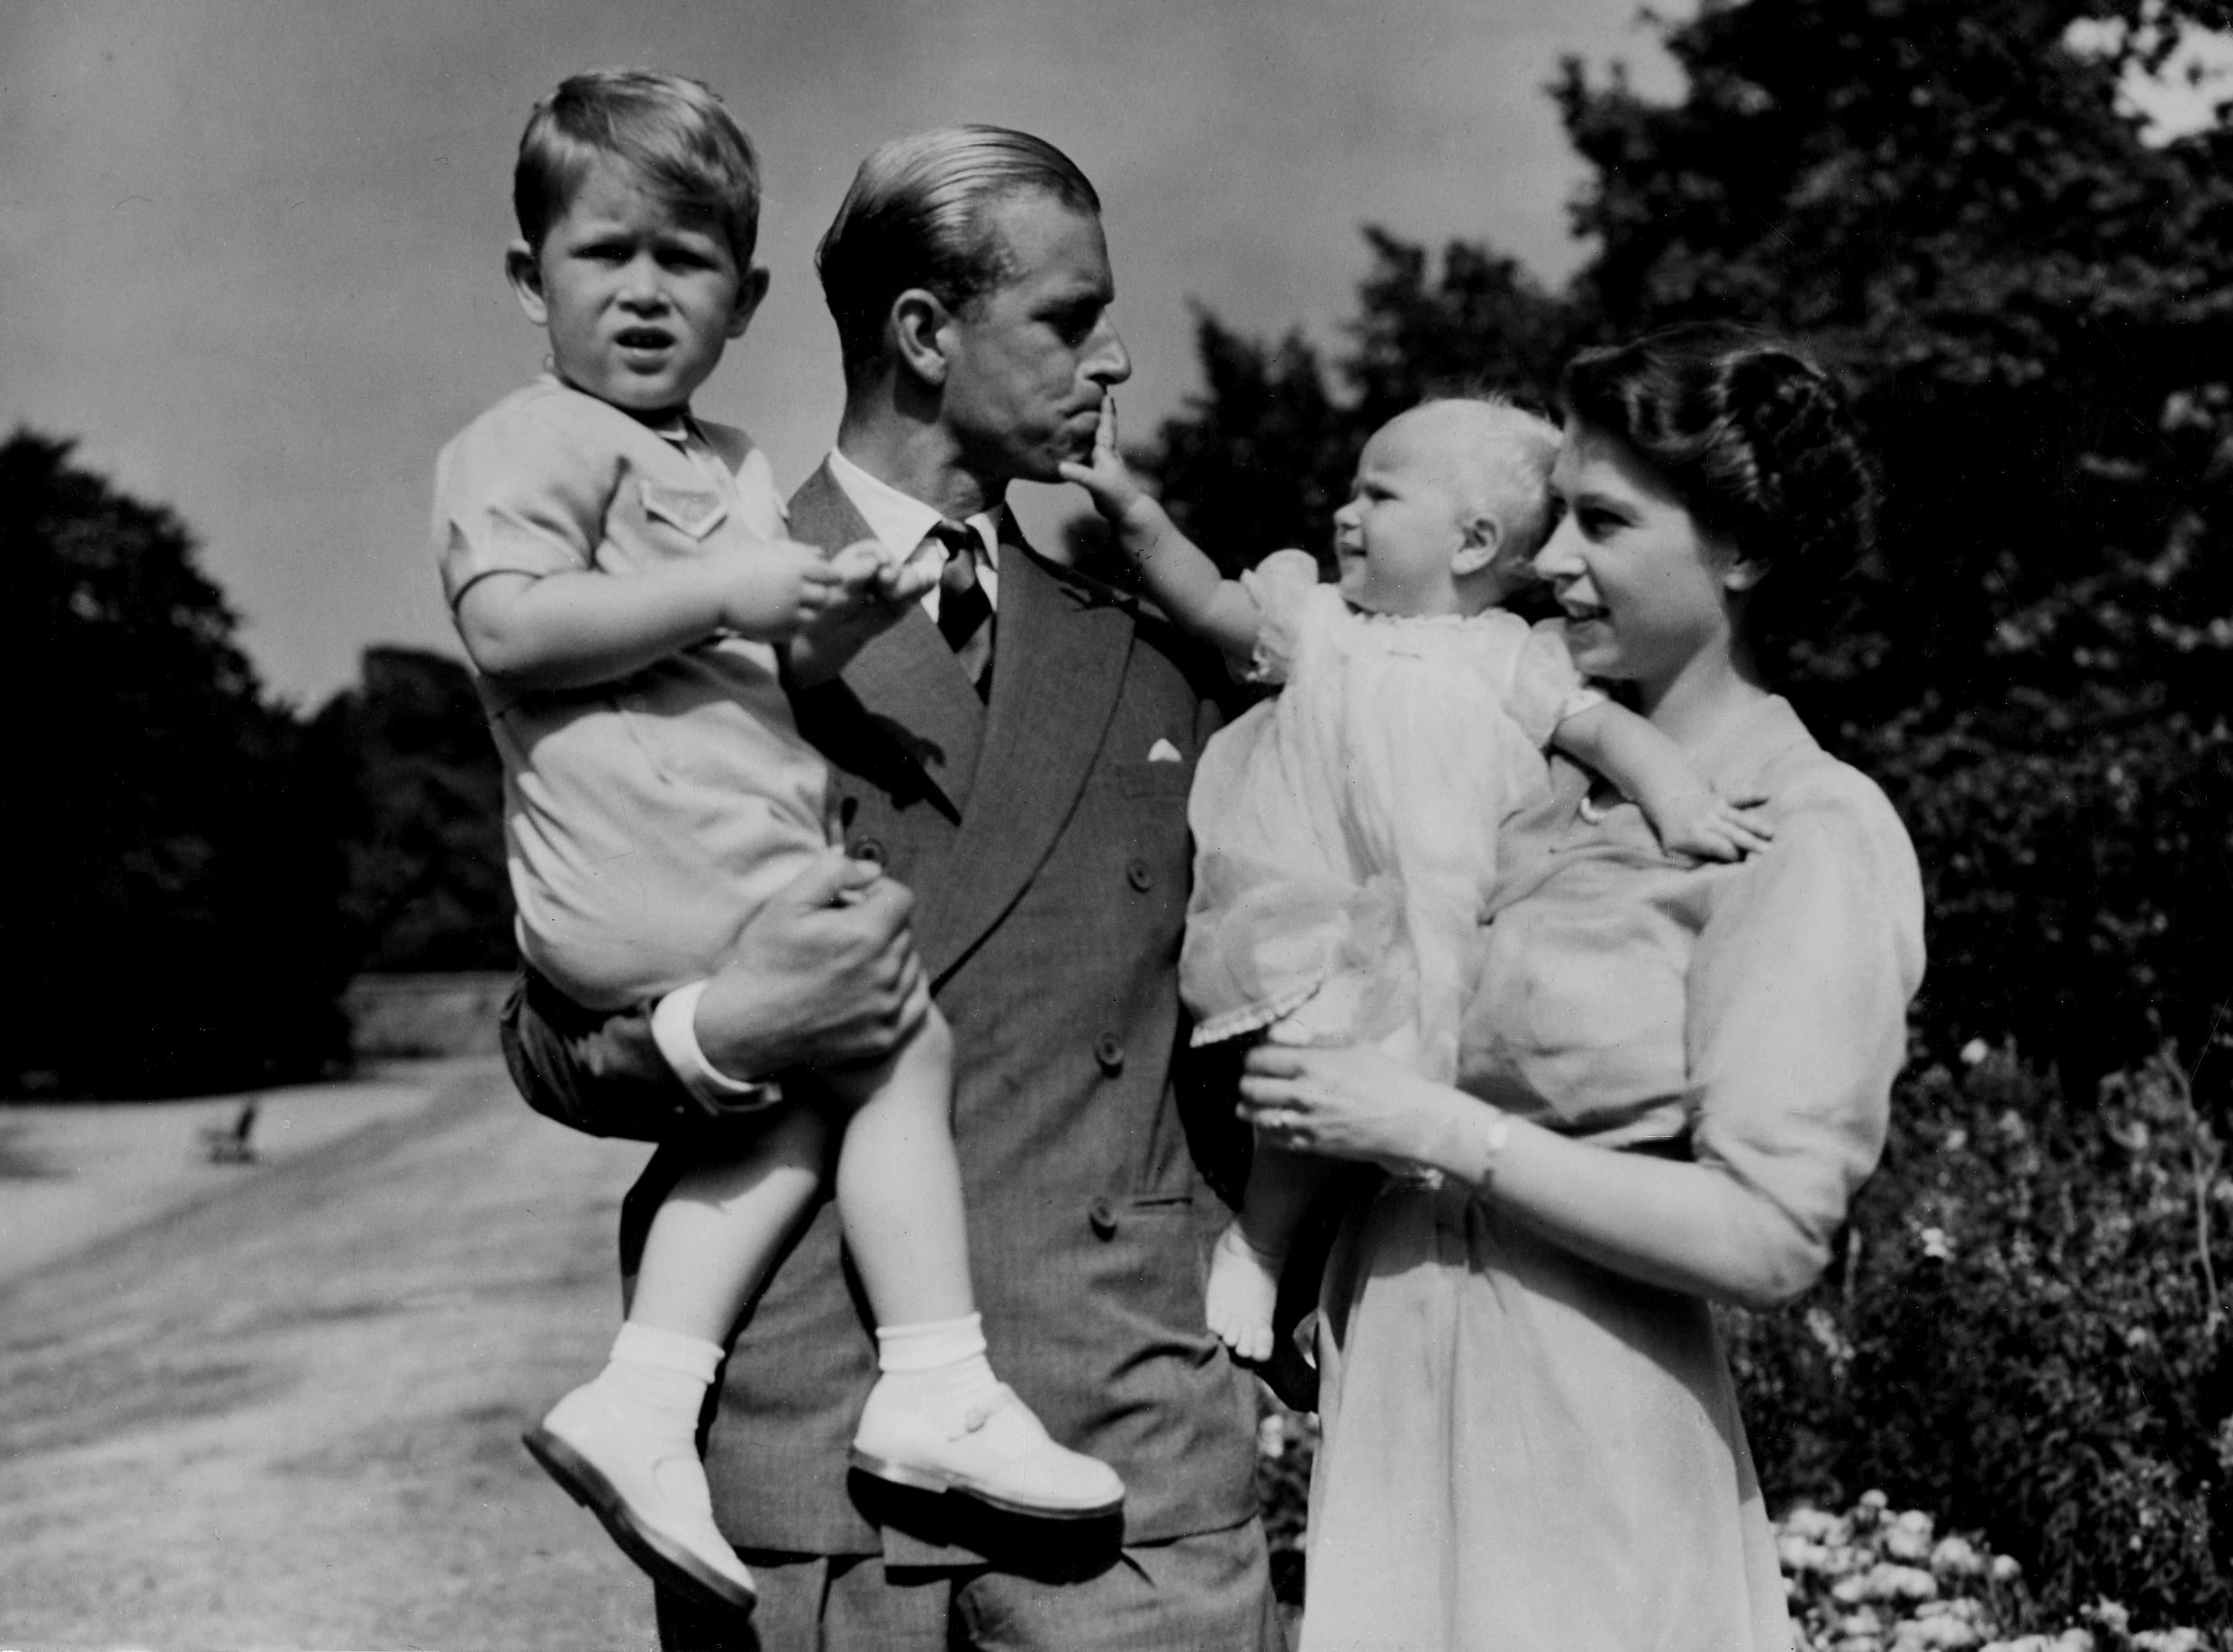 In this August 1951 file photo, the then Princess Elizabeth stands with her husband Philip, Duke of Edinburgh, and their children Prince Charles and Princess Anne at Clarence House, at that point the royal couple's London residence.